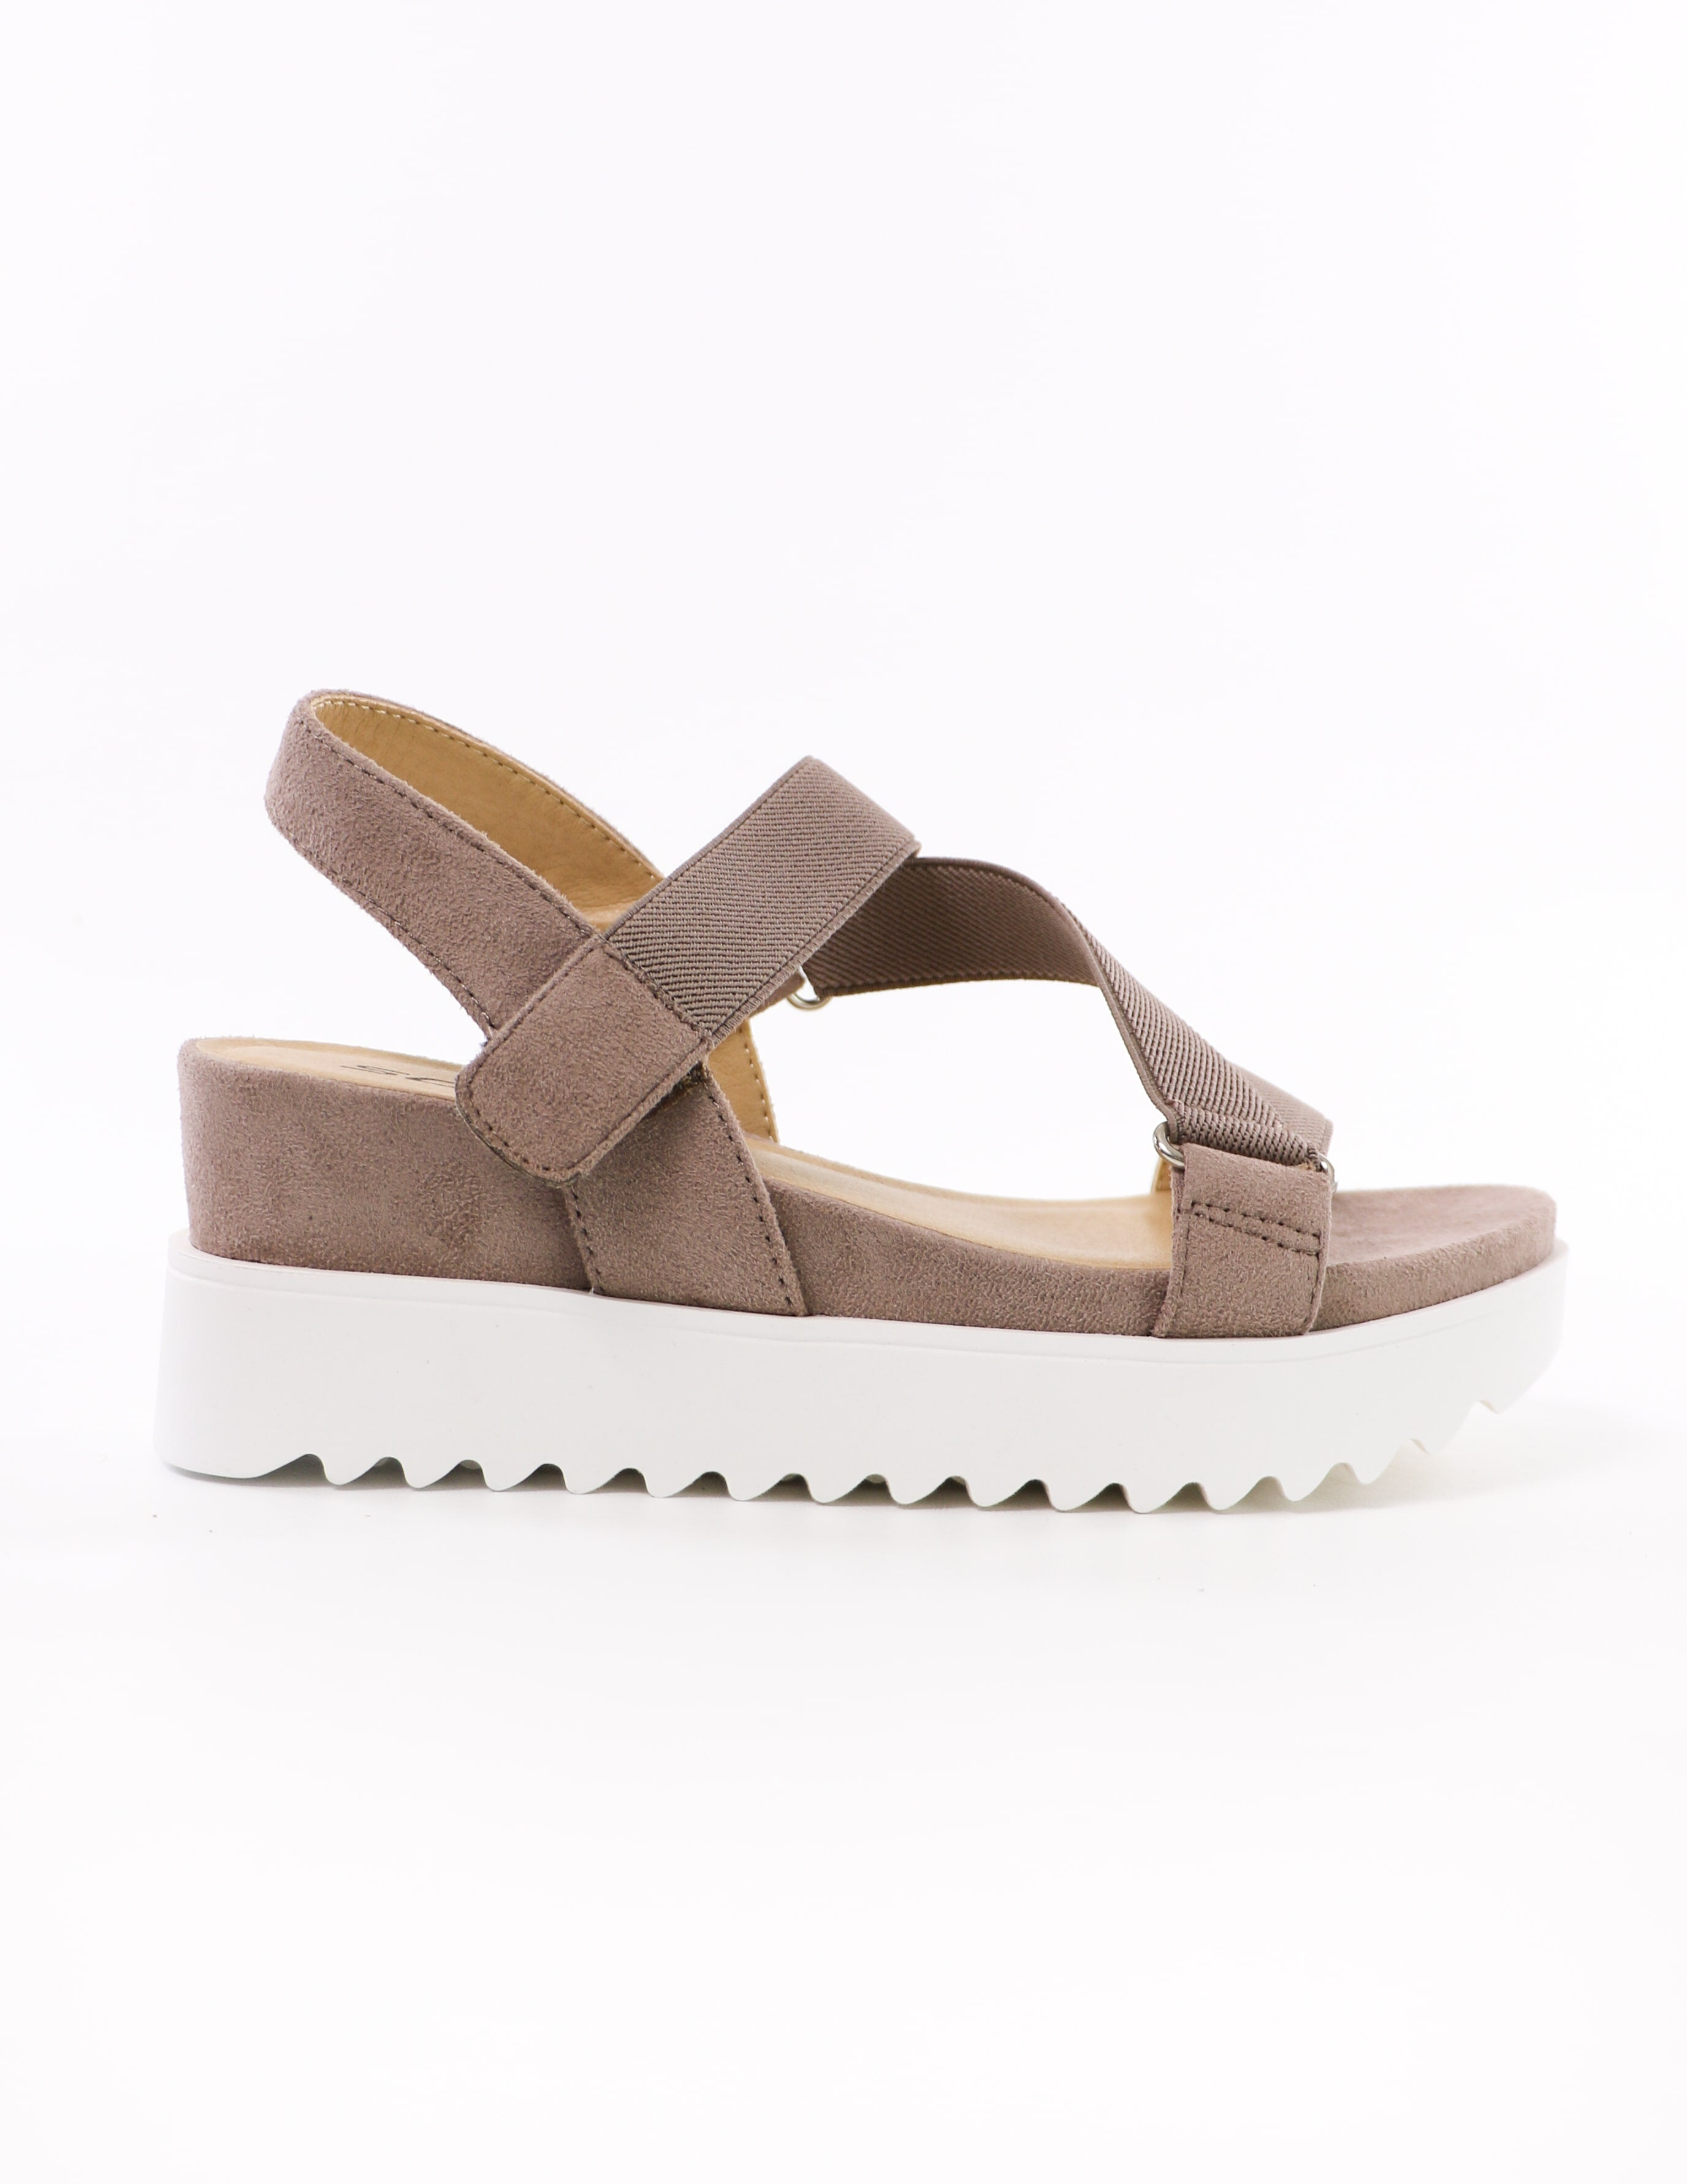 velcro strappy go lucky soda taupe platform sandals with wedge heel - elle bleu shoes